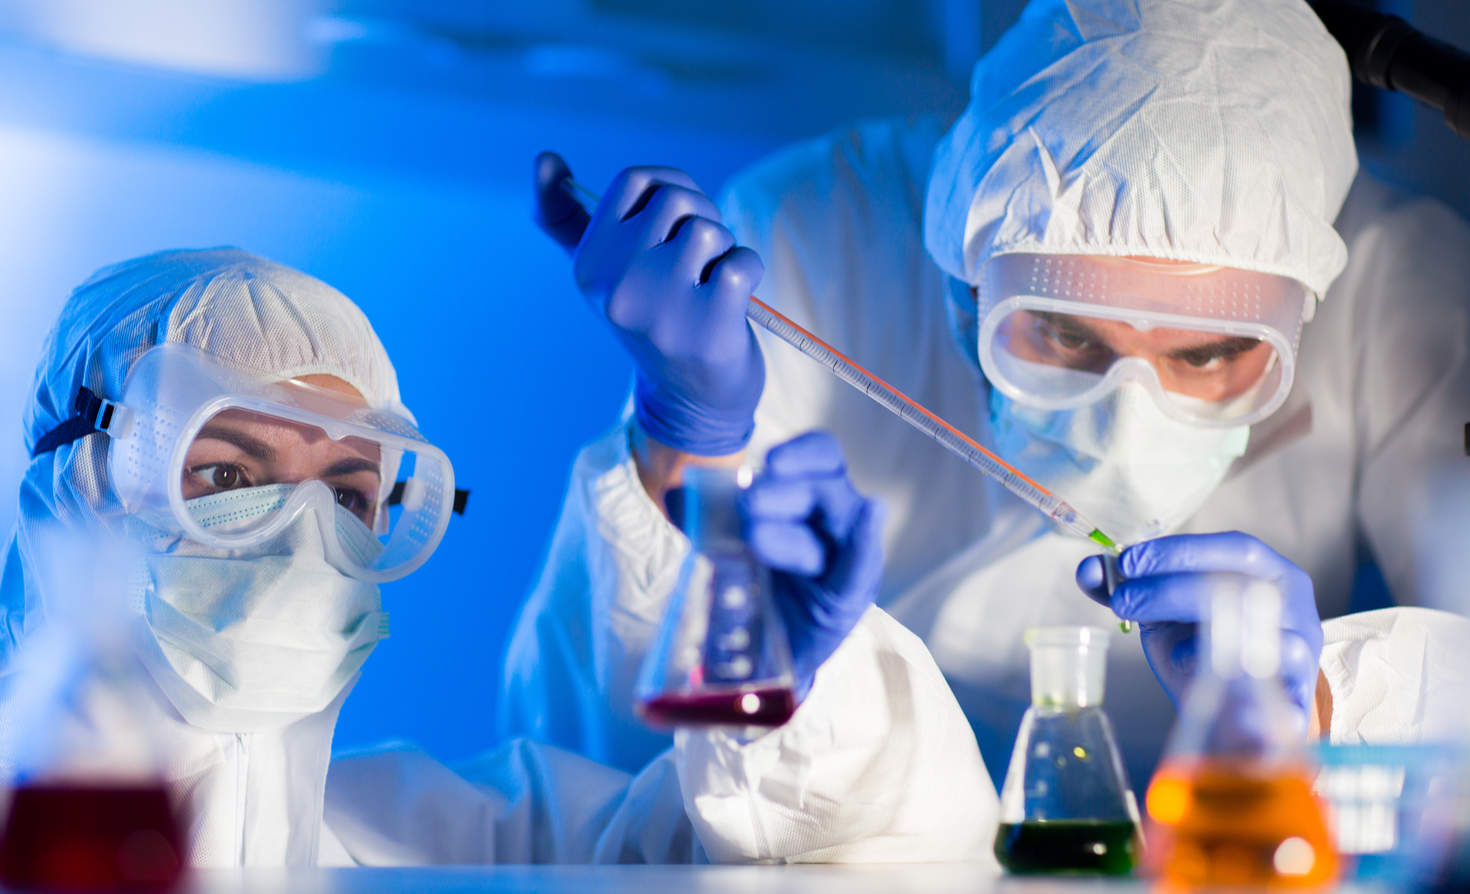 Scientists in a laboratory with chemicals